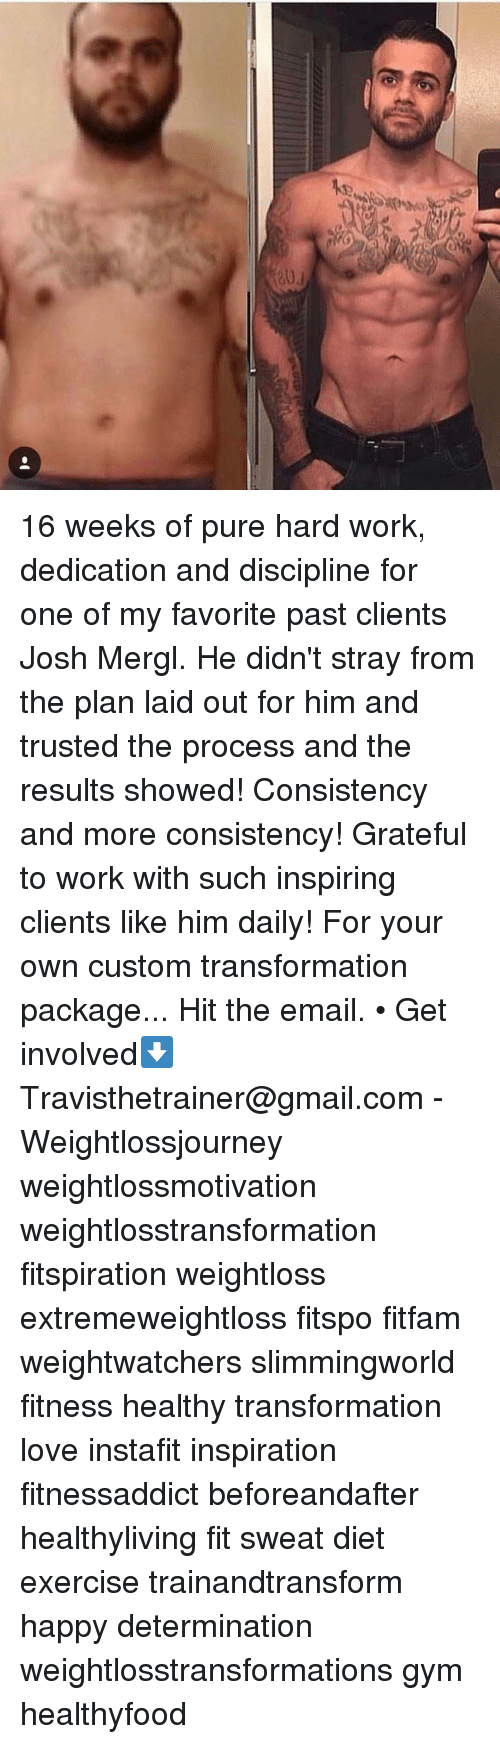 Gym, Love, and Memes: 16 weeks of pure hard work, dedication and discipline for one of my favorite past clients Josh Mergl. He didn't stray from the plan laid out for him and trusted the process and the results showed! Consistency and more consistency! Grateful to work with such inspiring clients like him daily! For your own custom transformation package... Hit the email. • Get involved⬇️ Travisthetrainer@gmail.com - Weightlossjourney weightlossmotivation weightlosstransformation fitspiration weightloss extremeweightloss fitspo fitfam weightwatchers slimmingworld fitness healthy transformation love instafit inspiration fitnessaddict beforeandafter healthyliving fit sweat diet exercise trainandtransform happy determination weightlosstransformations gym healthyfood